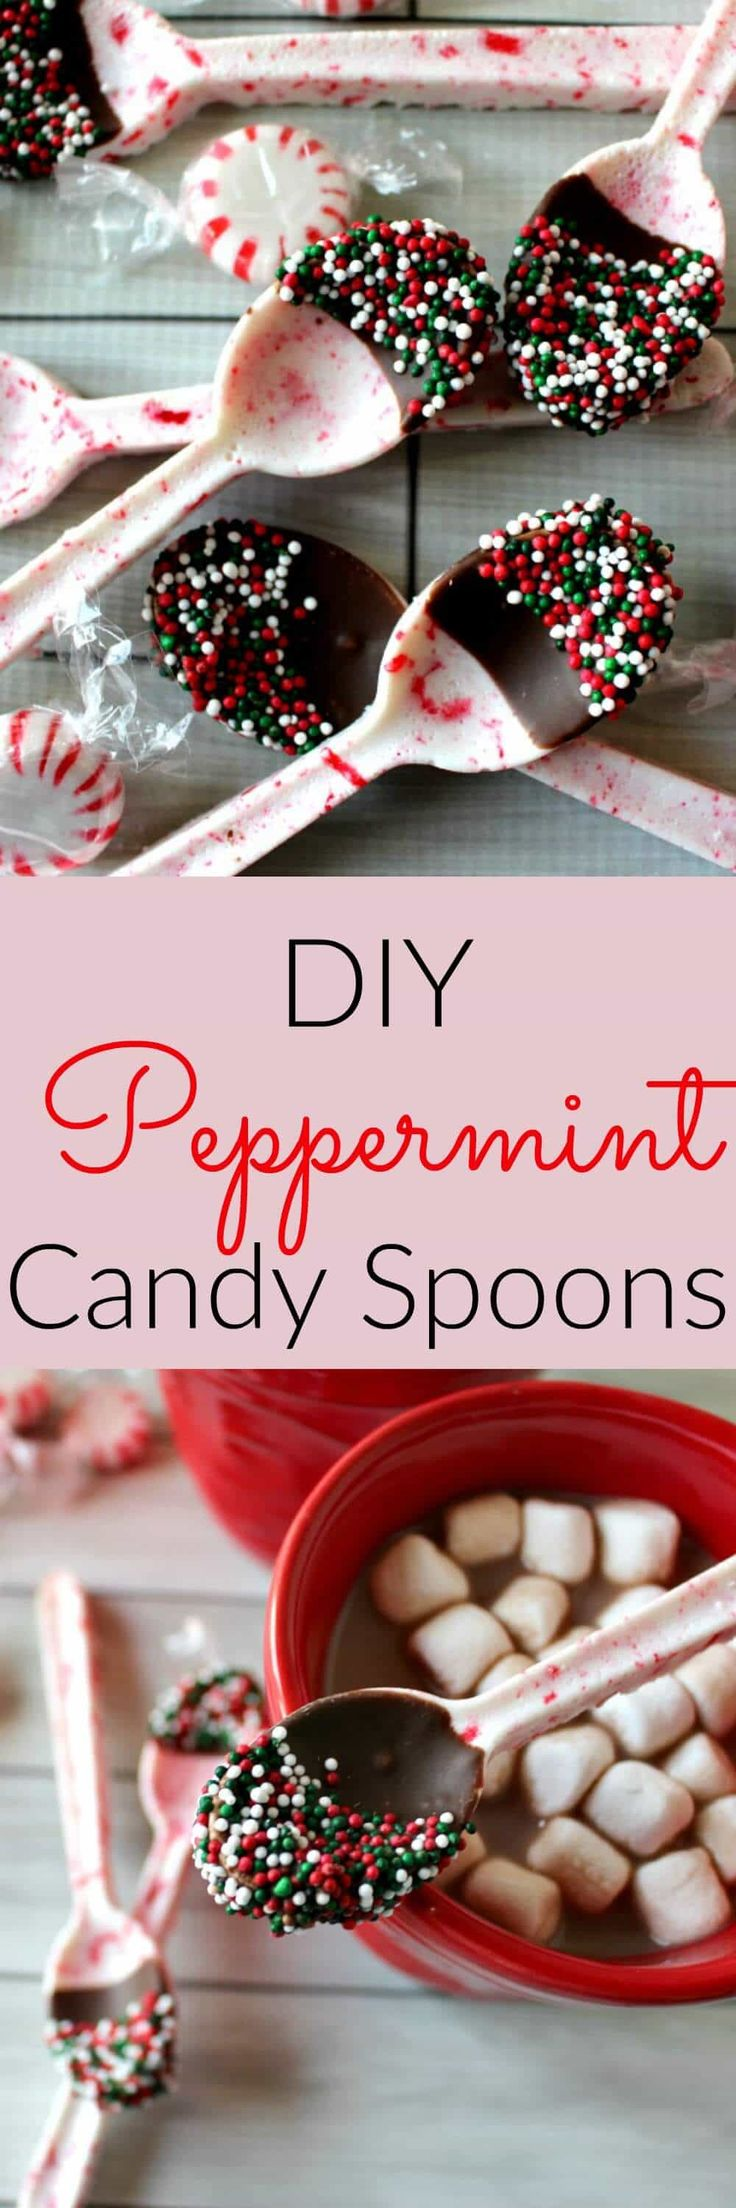 Peppermint Candy Spoons - a cute and easy DIY holiday gift